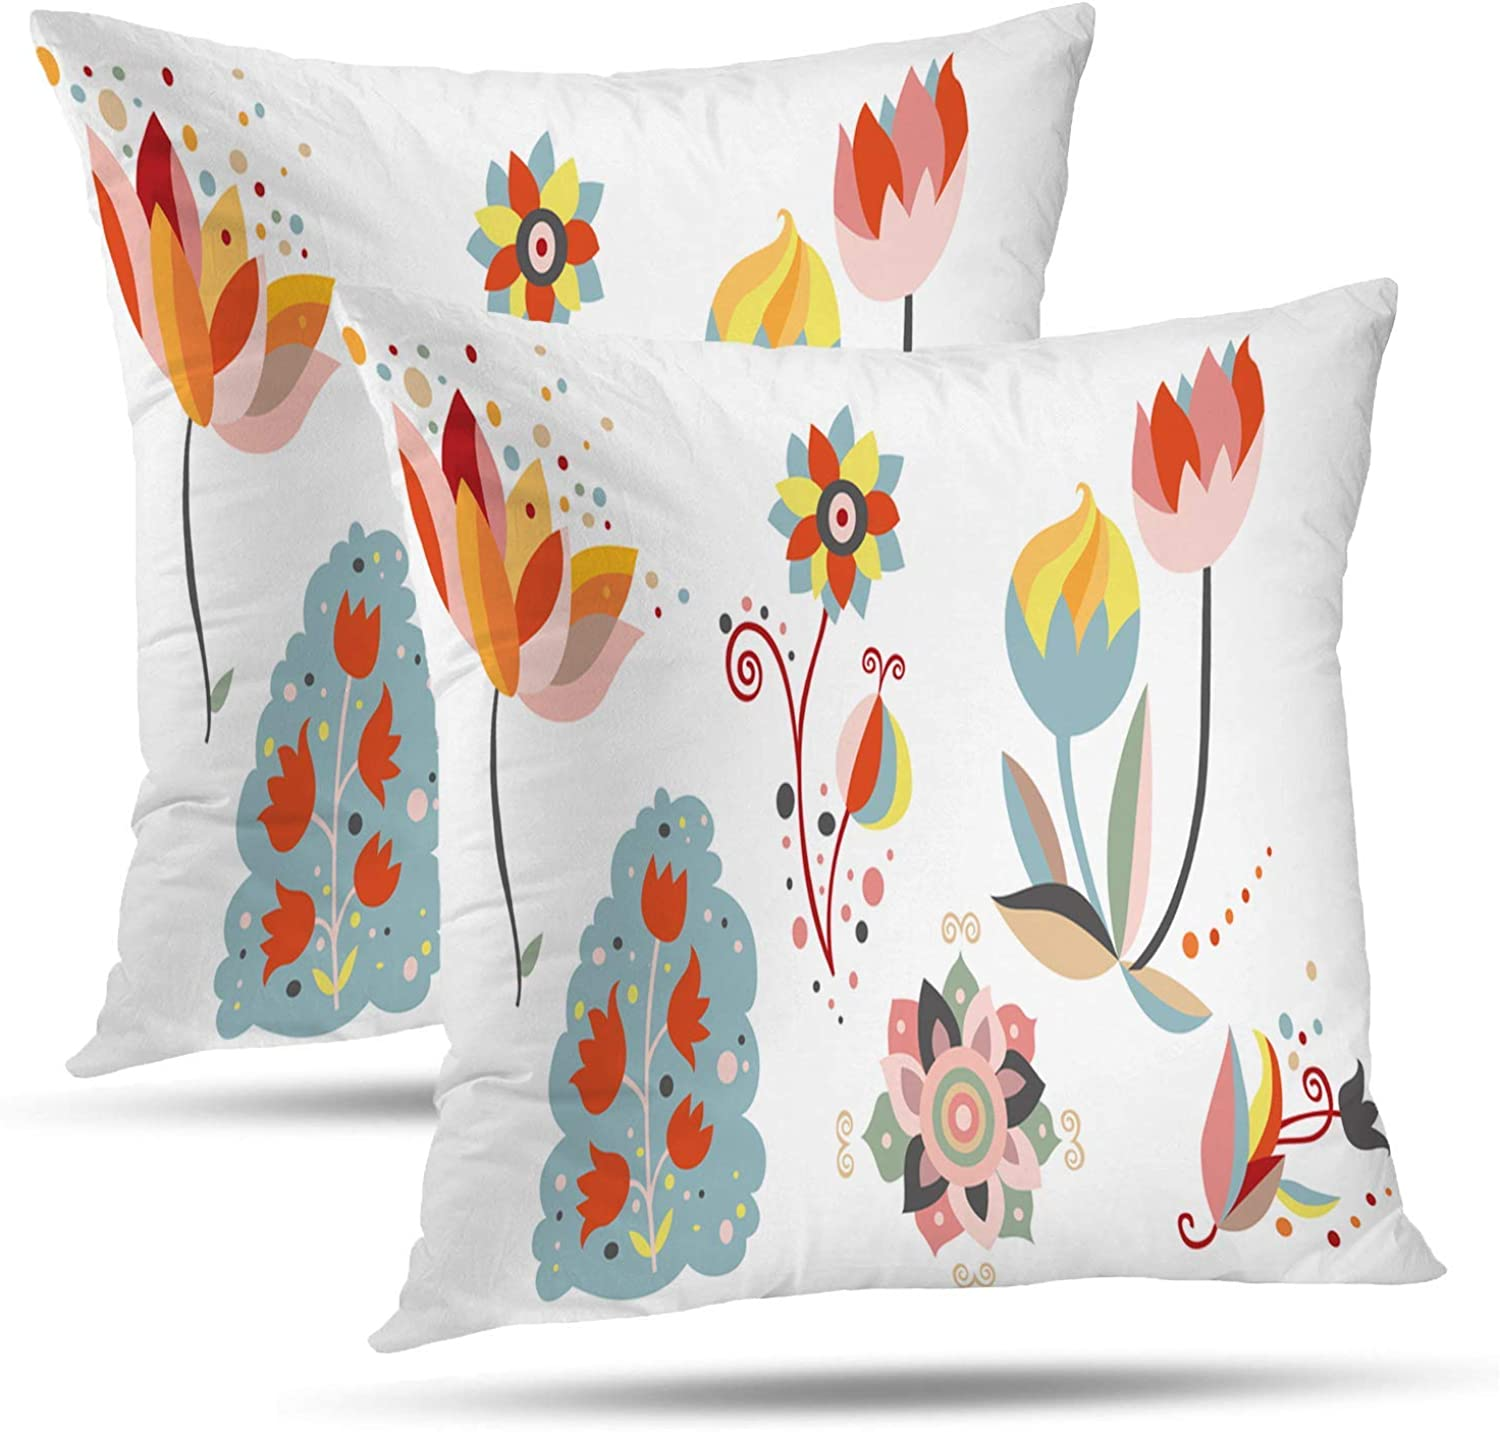 PENGTU Pillows Premium Throw Pillow Covers 18x18 Inch Set of 2, Ornamental Flowers Folk Art Floral Summer Whimsical Blossoms Double Sided Square Pillow Cases Pillowcase Sofa Cushion